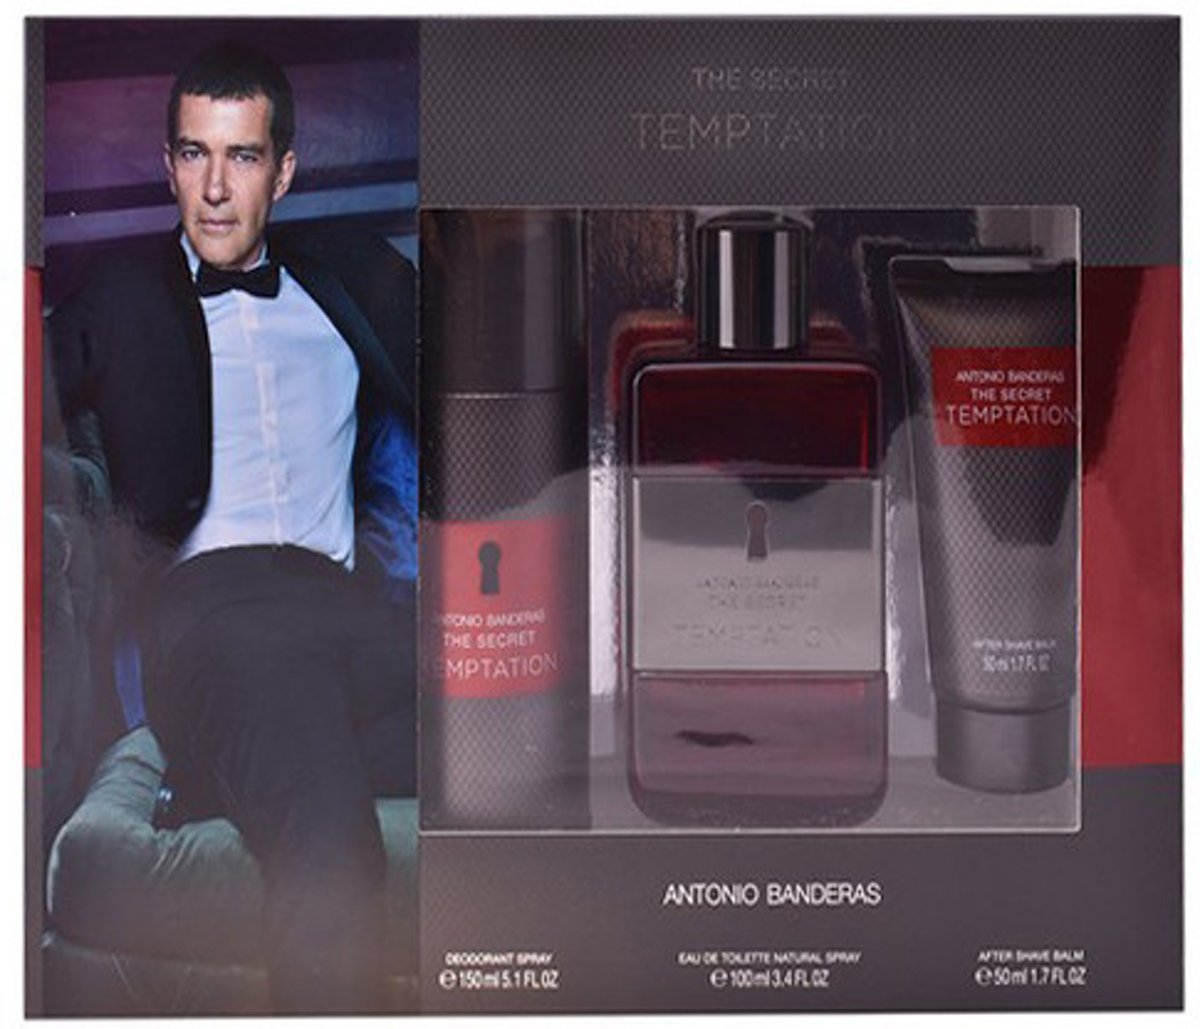 Antonio Banderas The Secret Temptation Man Eau De Toilette Spray 100ml Set 3 Pieces 2017